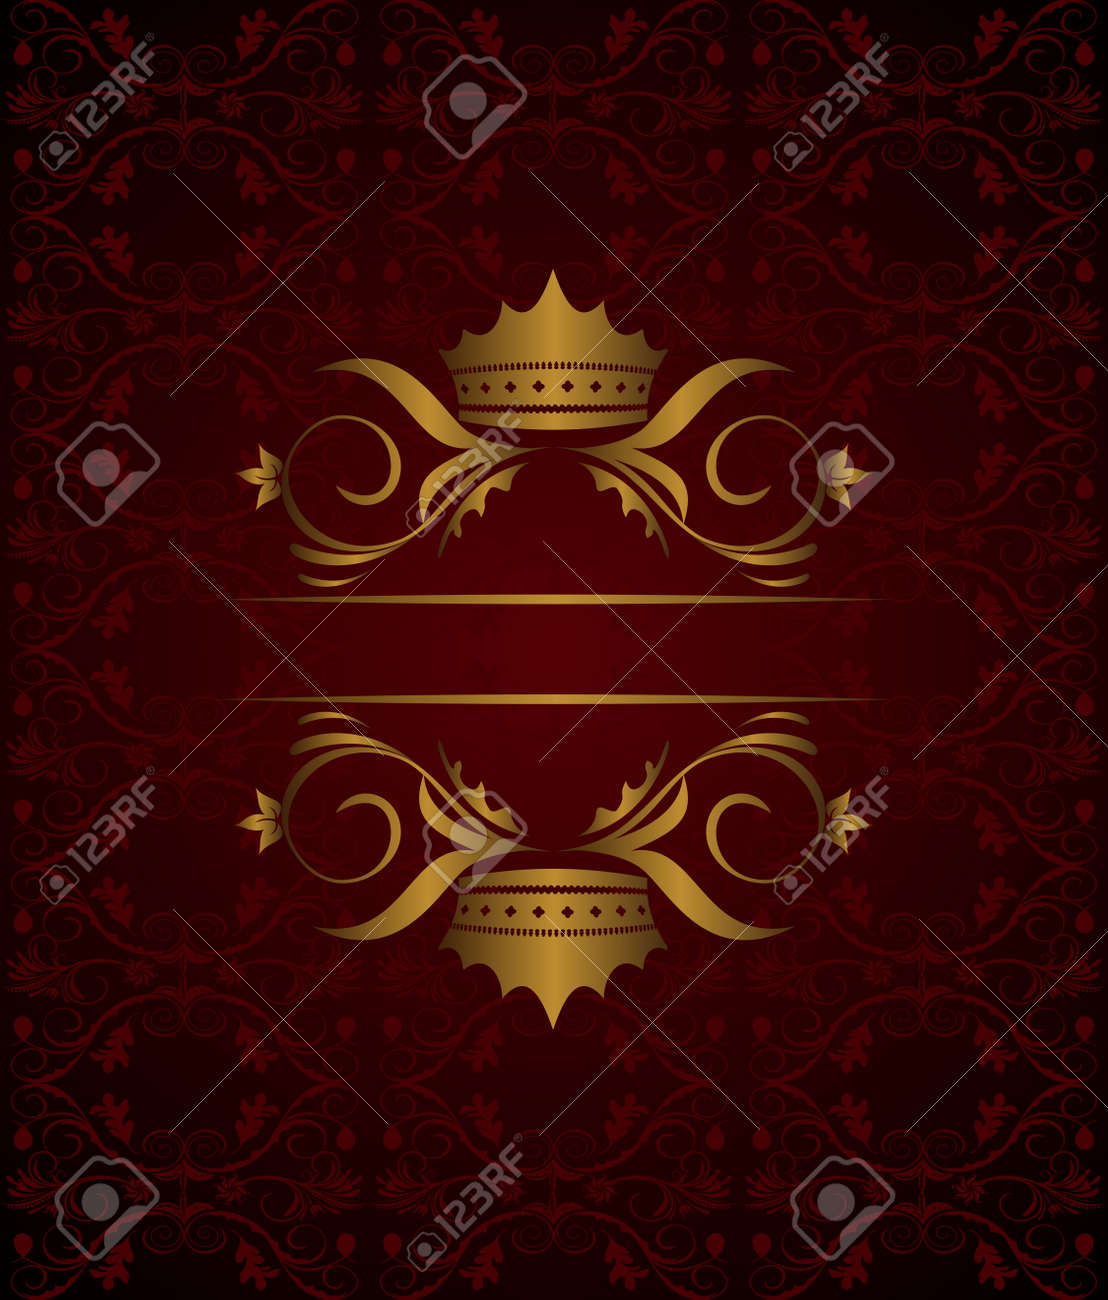 Illustration vintage background with crown Stock Vector - 8290258